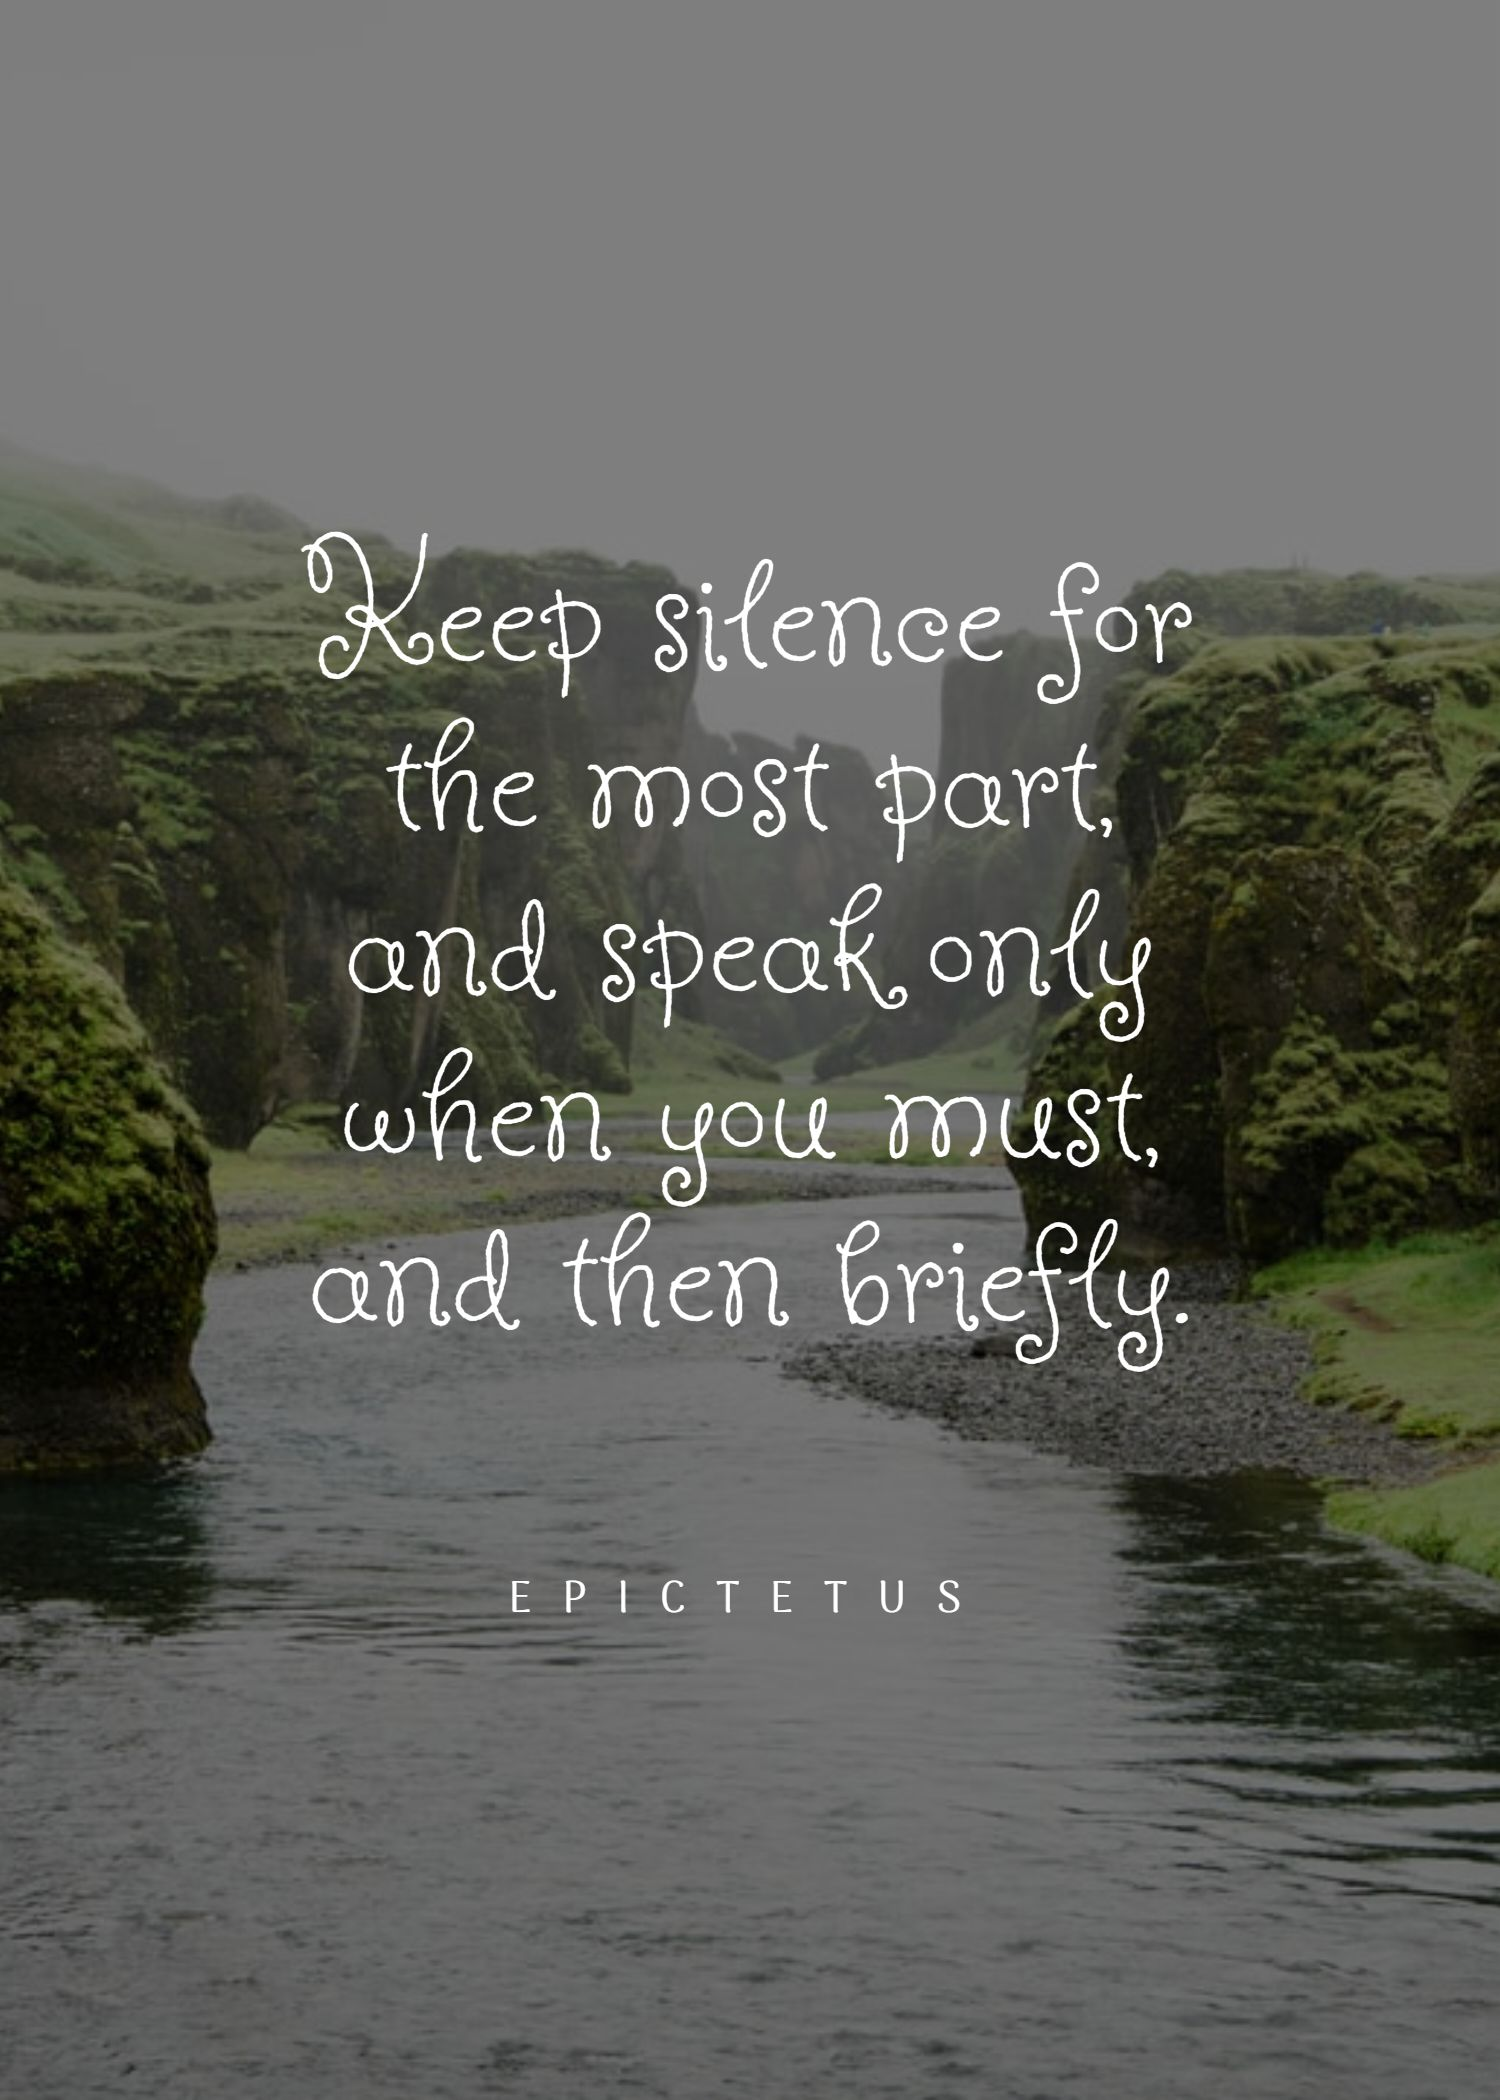 Quotes image of Keep silence for the most part, and speak only when you must, and then briefly.